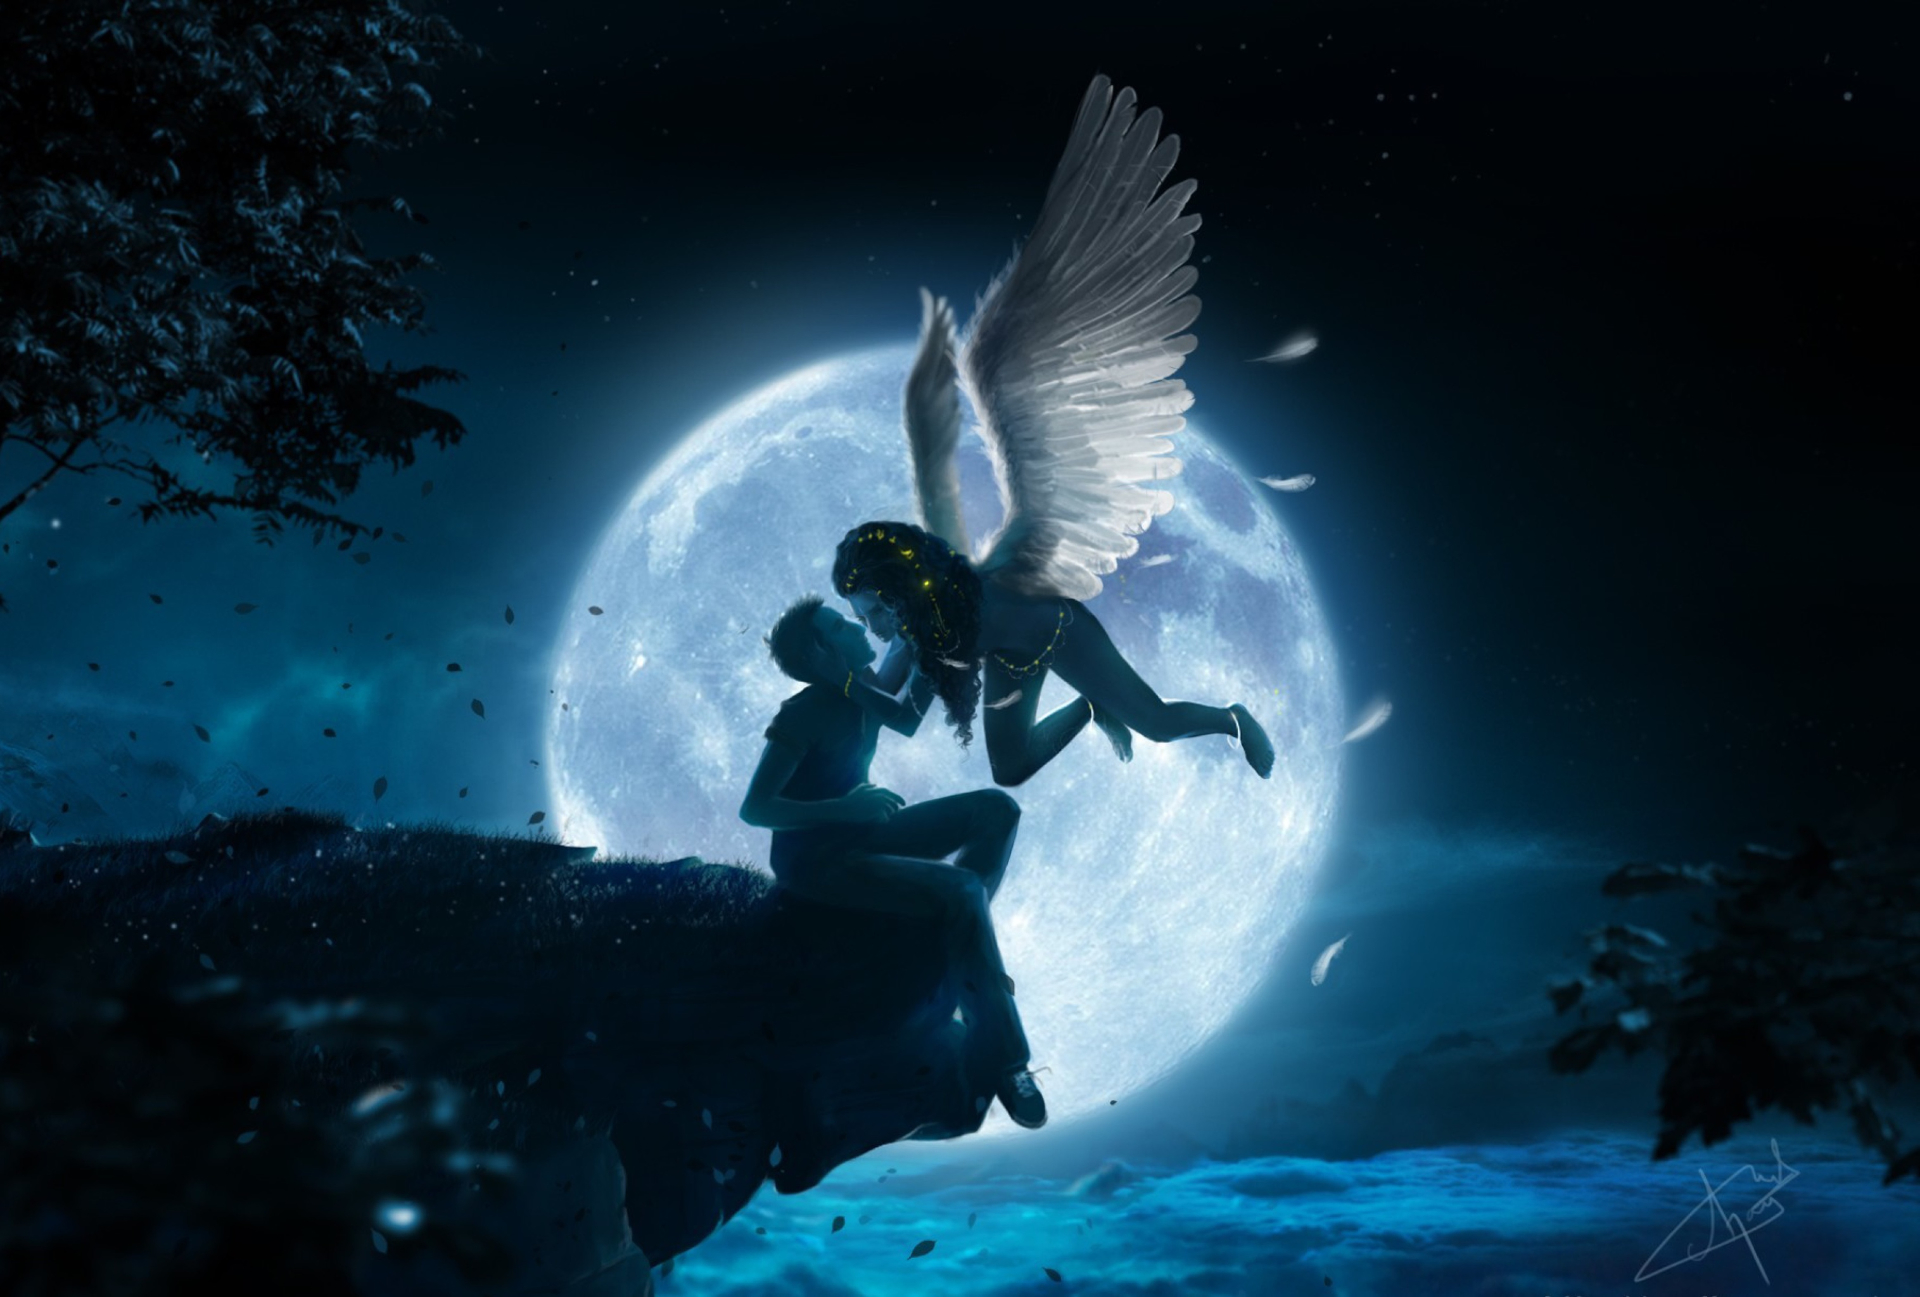 kiss of an angel hd wallpaper background image